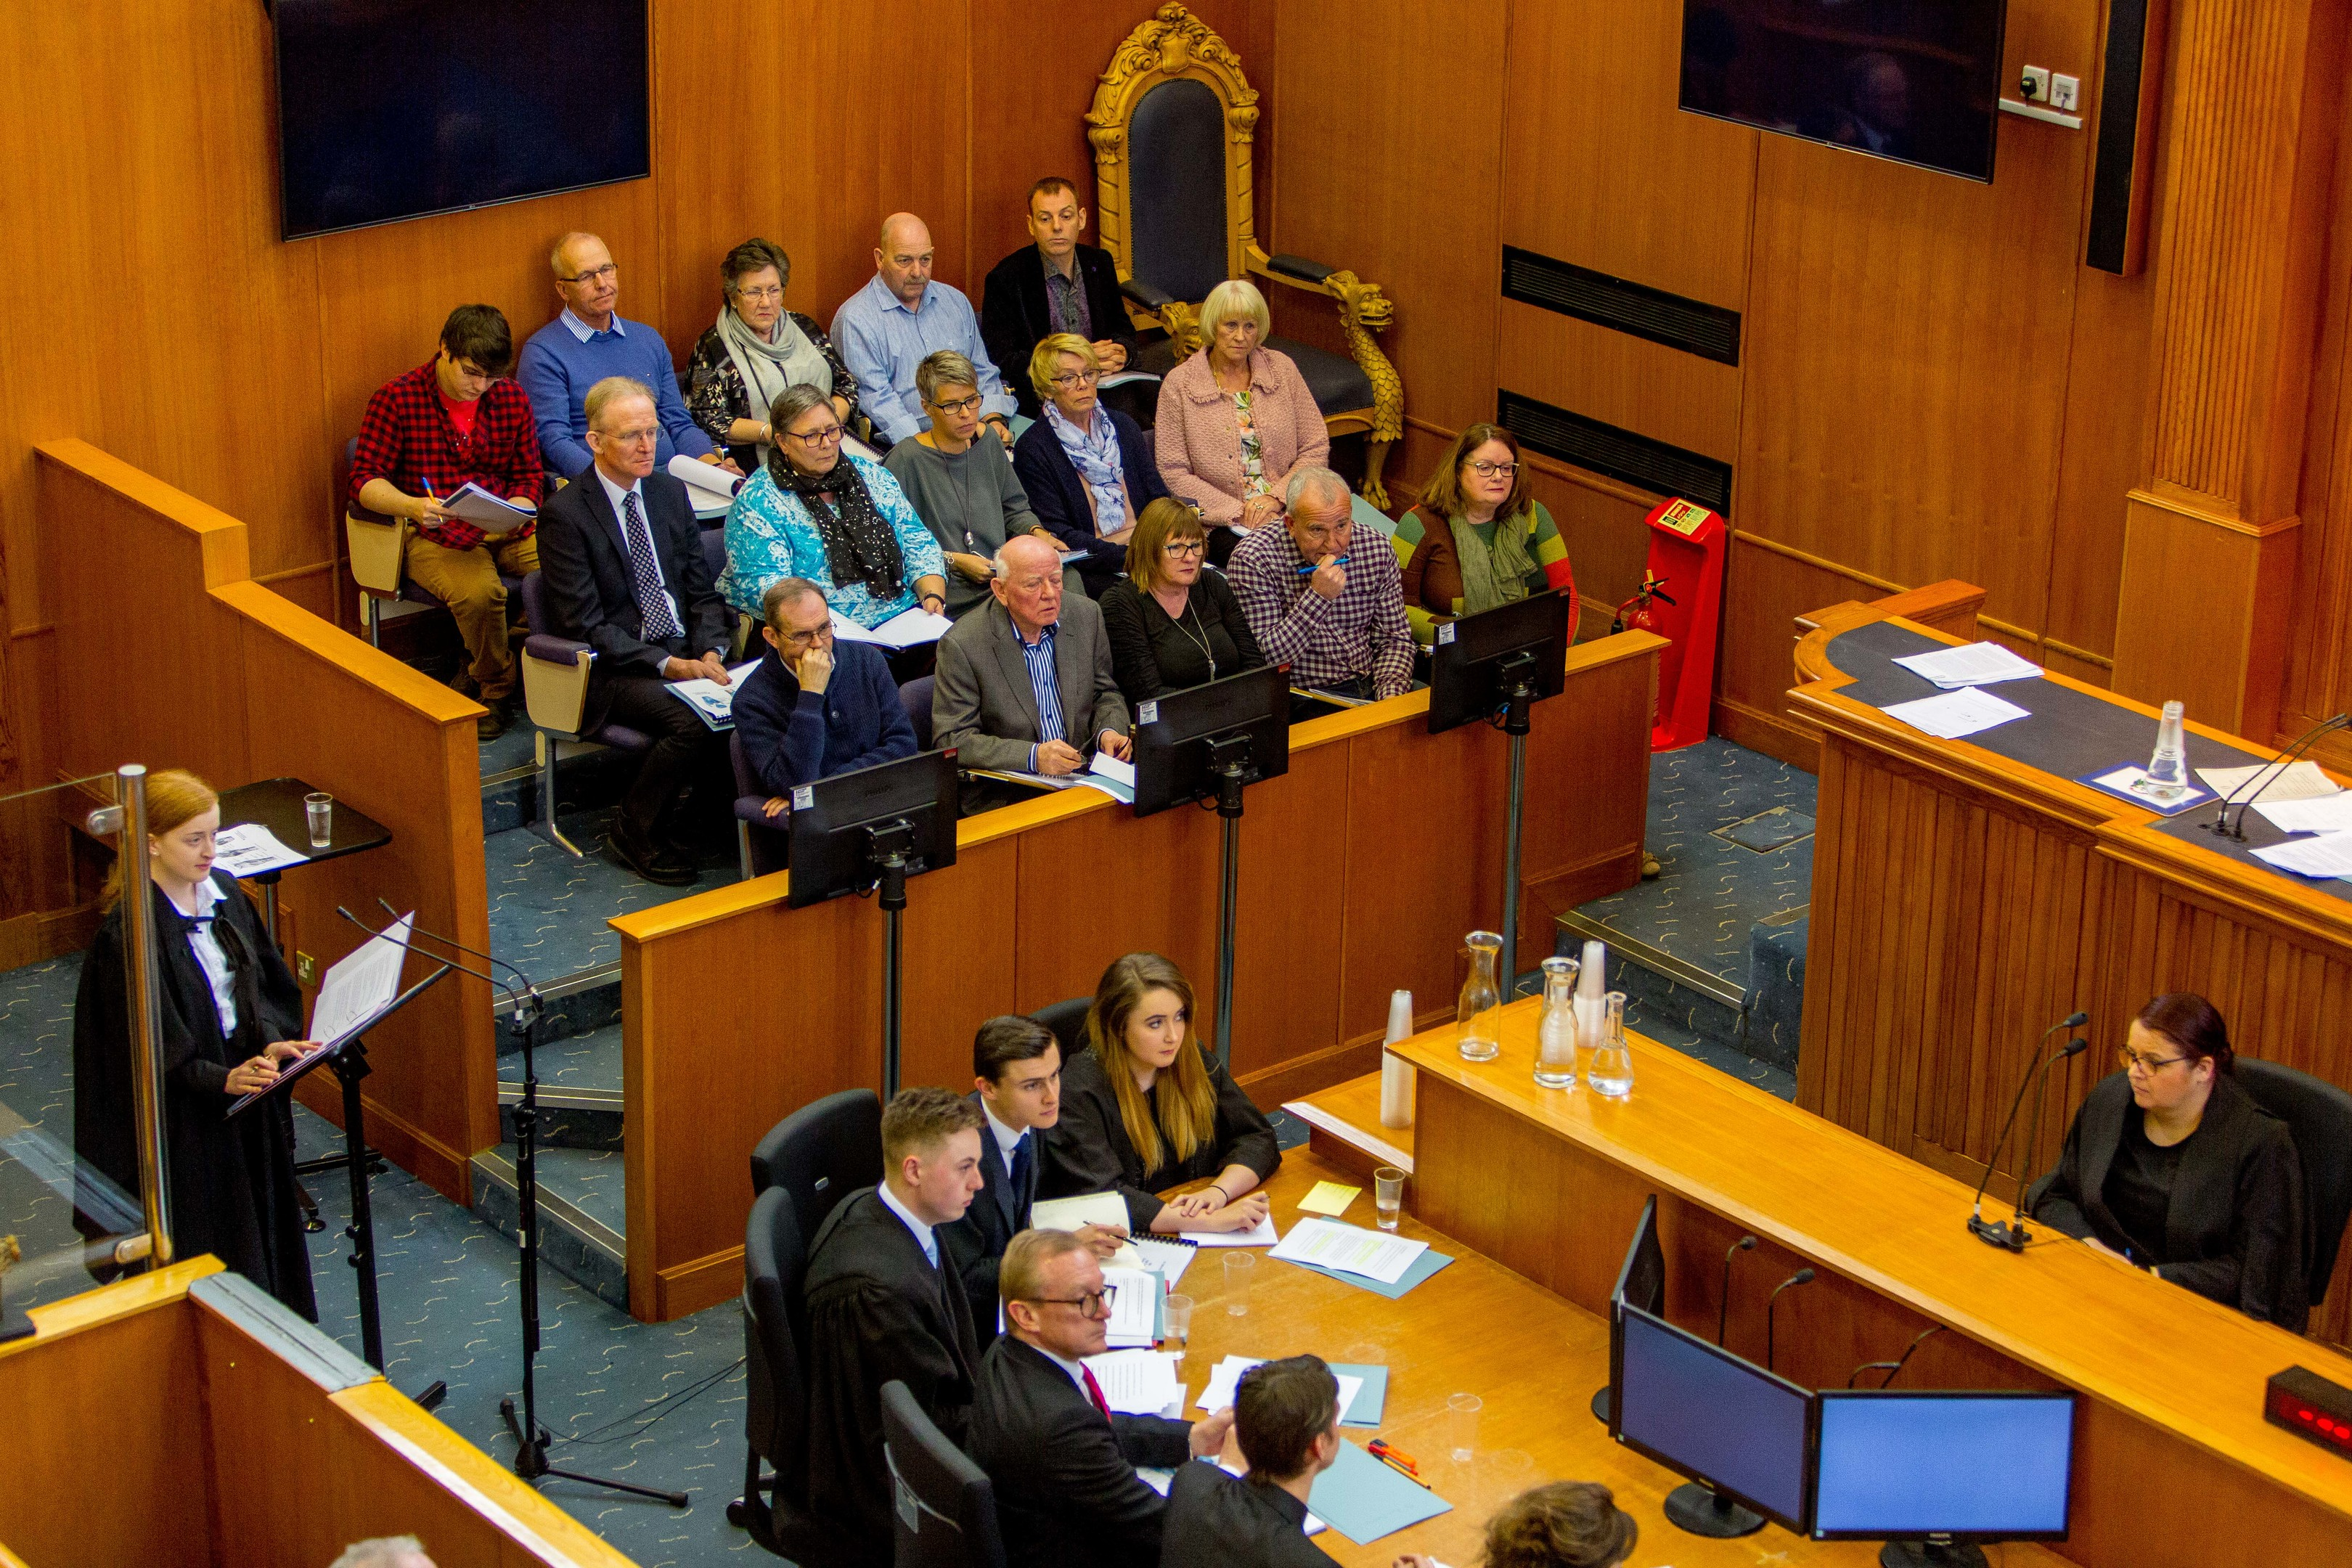 """The Court Room at Dundee Sheriff Court during the """"trial"""" of William Bury"""